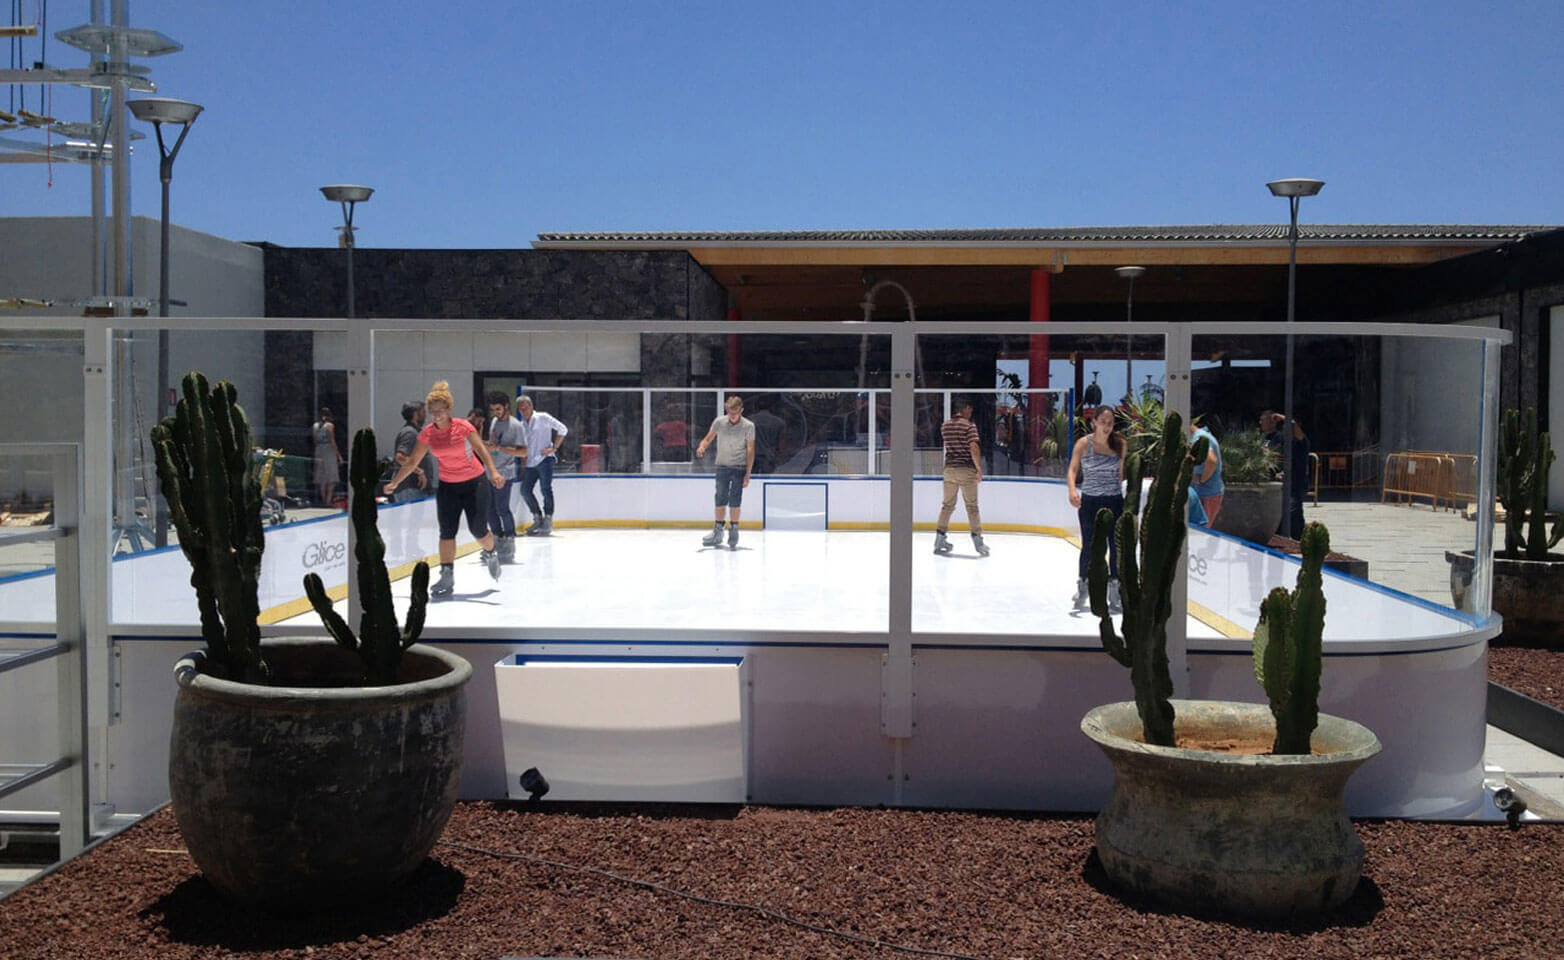 Artificial ice rink mini arena outdoors